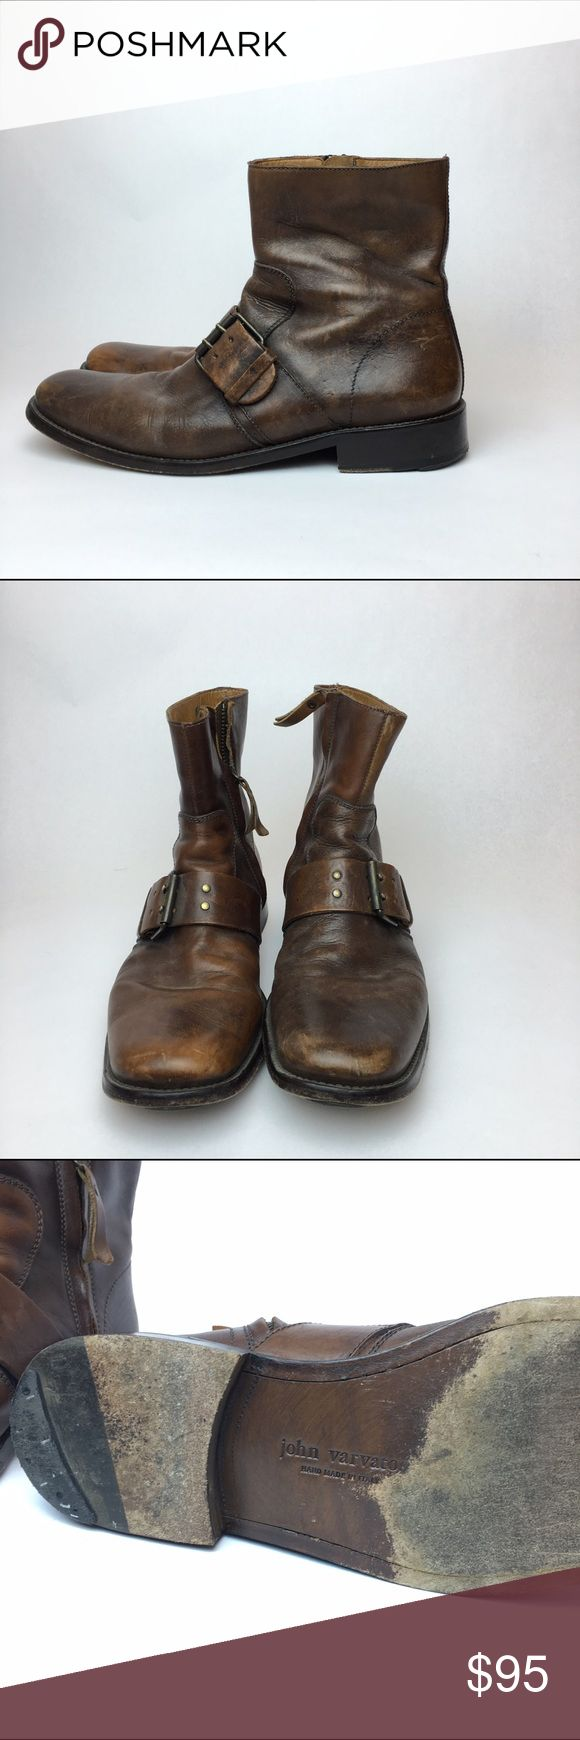 John Varartos tan leather boots 8.5 Good condition. All leather boot. Side zipper empty. Leather has a distressed design John Varvatos Shoes Boots